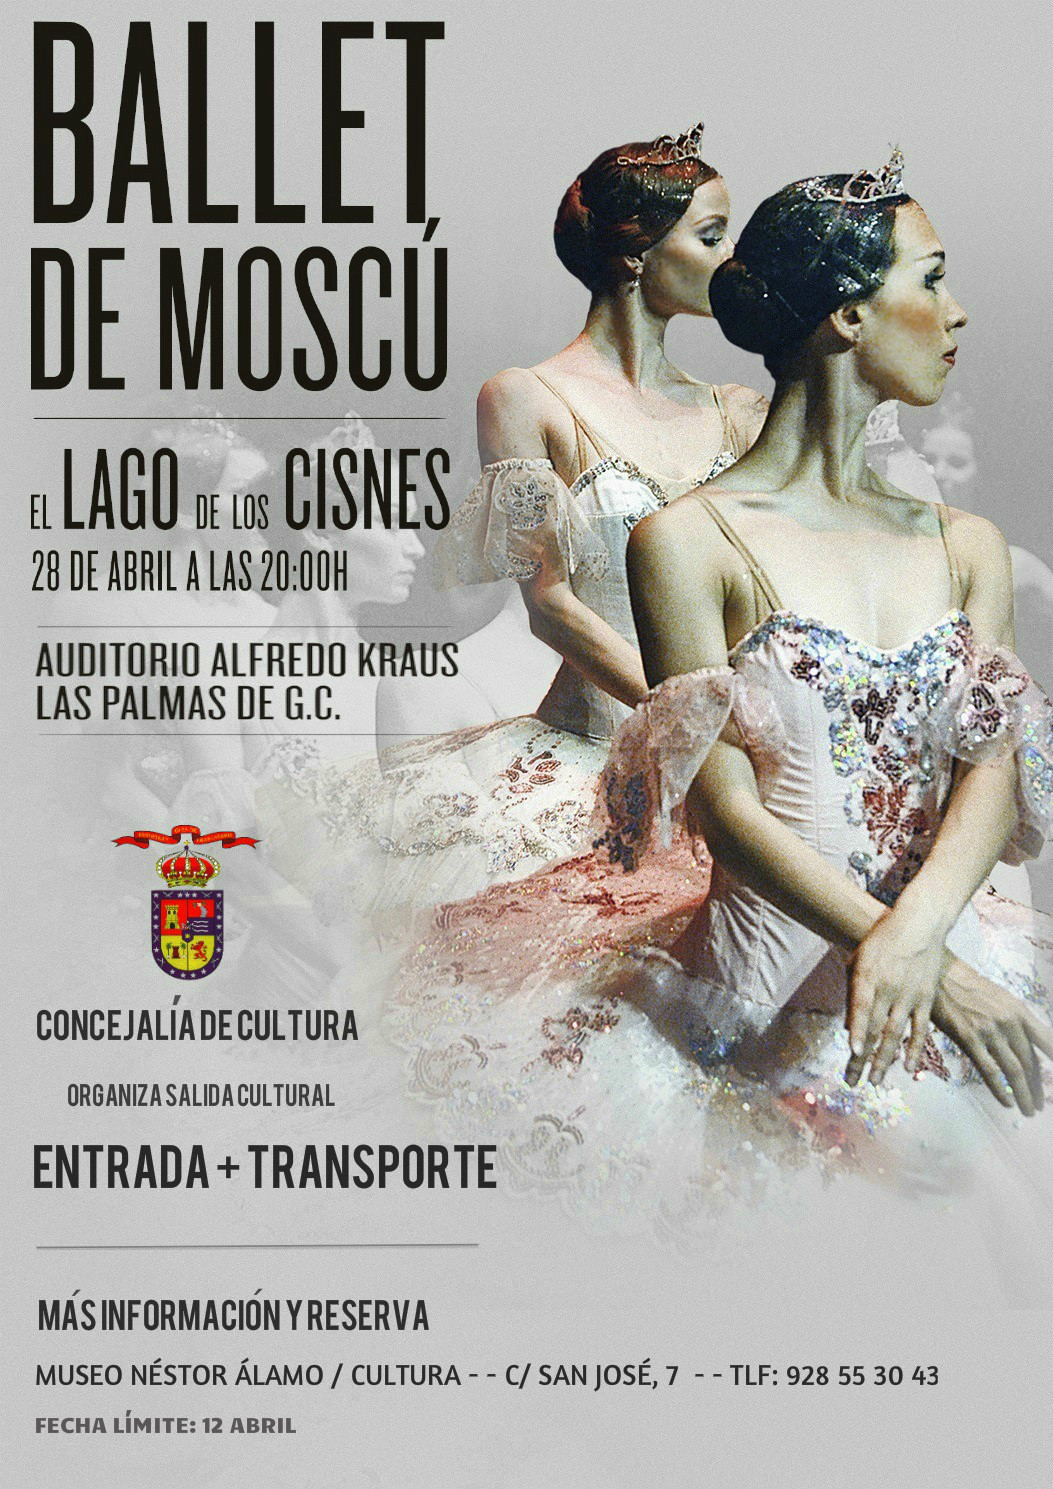 CARTELLAGOCISNES2018